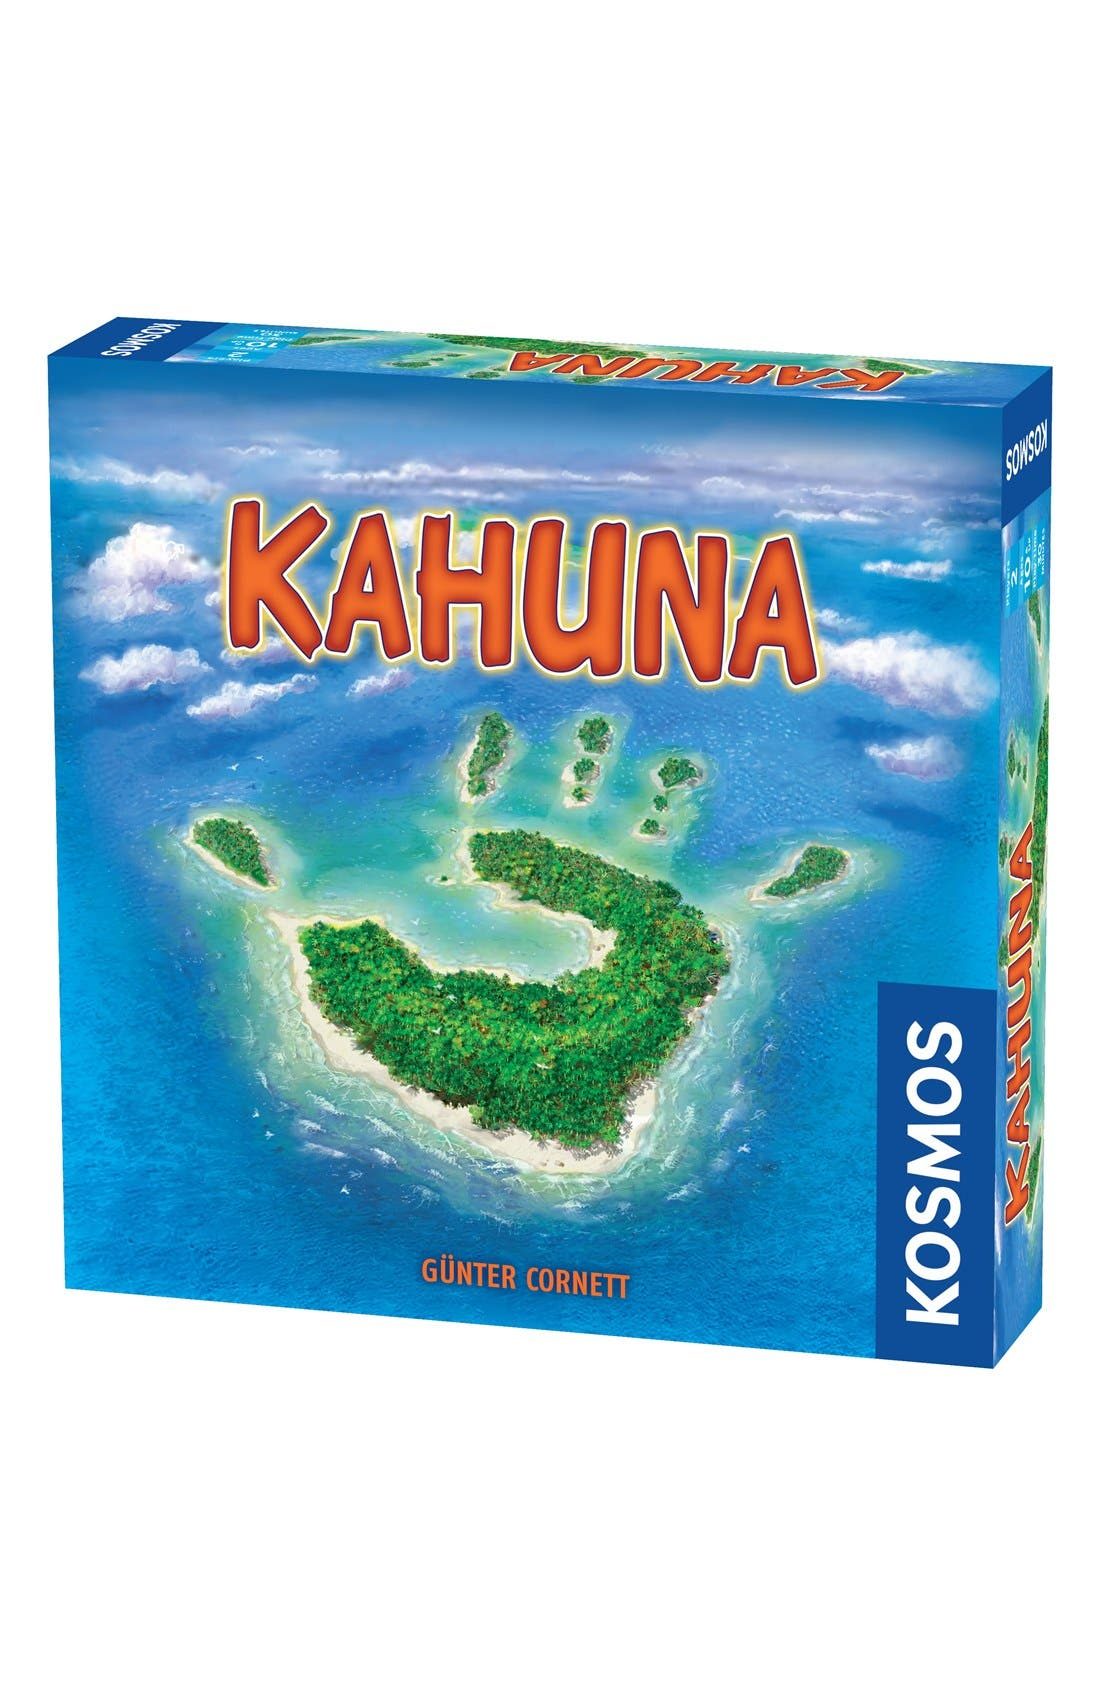 'Kahuna' Two-Player Board Game,                             Main thumbnail 1, color,                             400